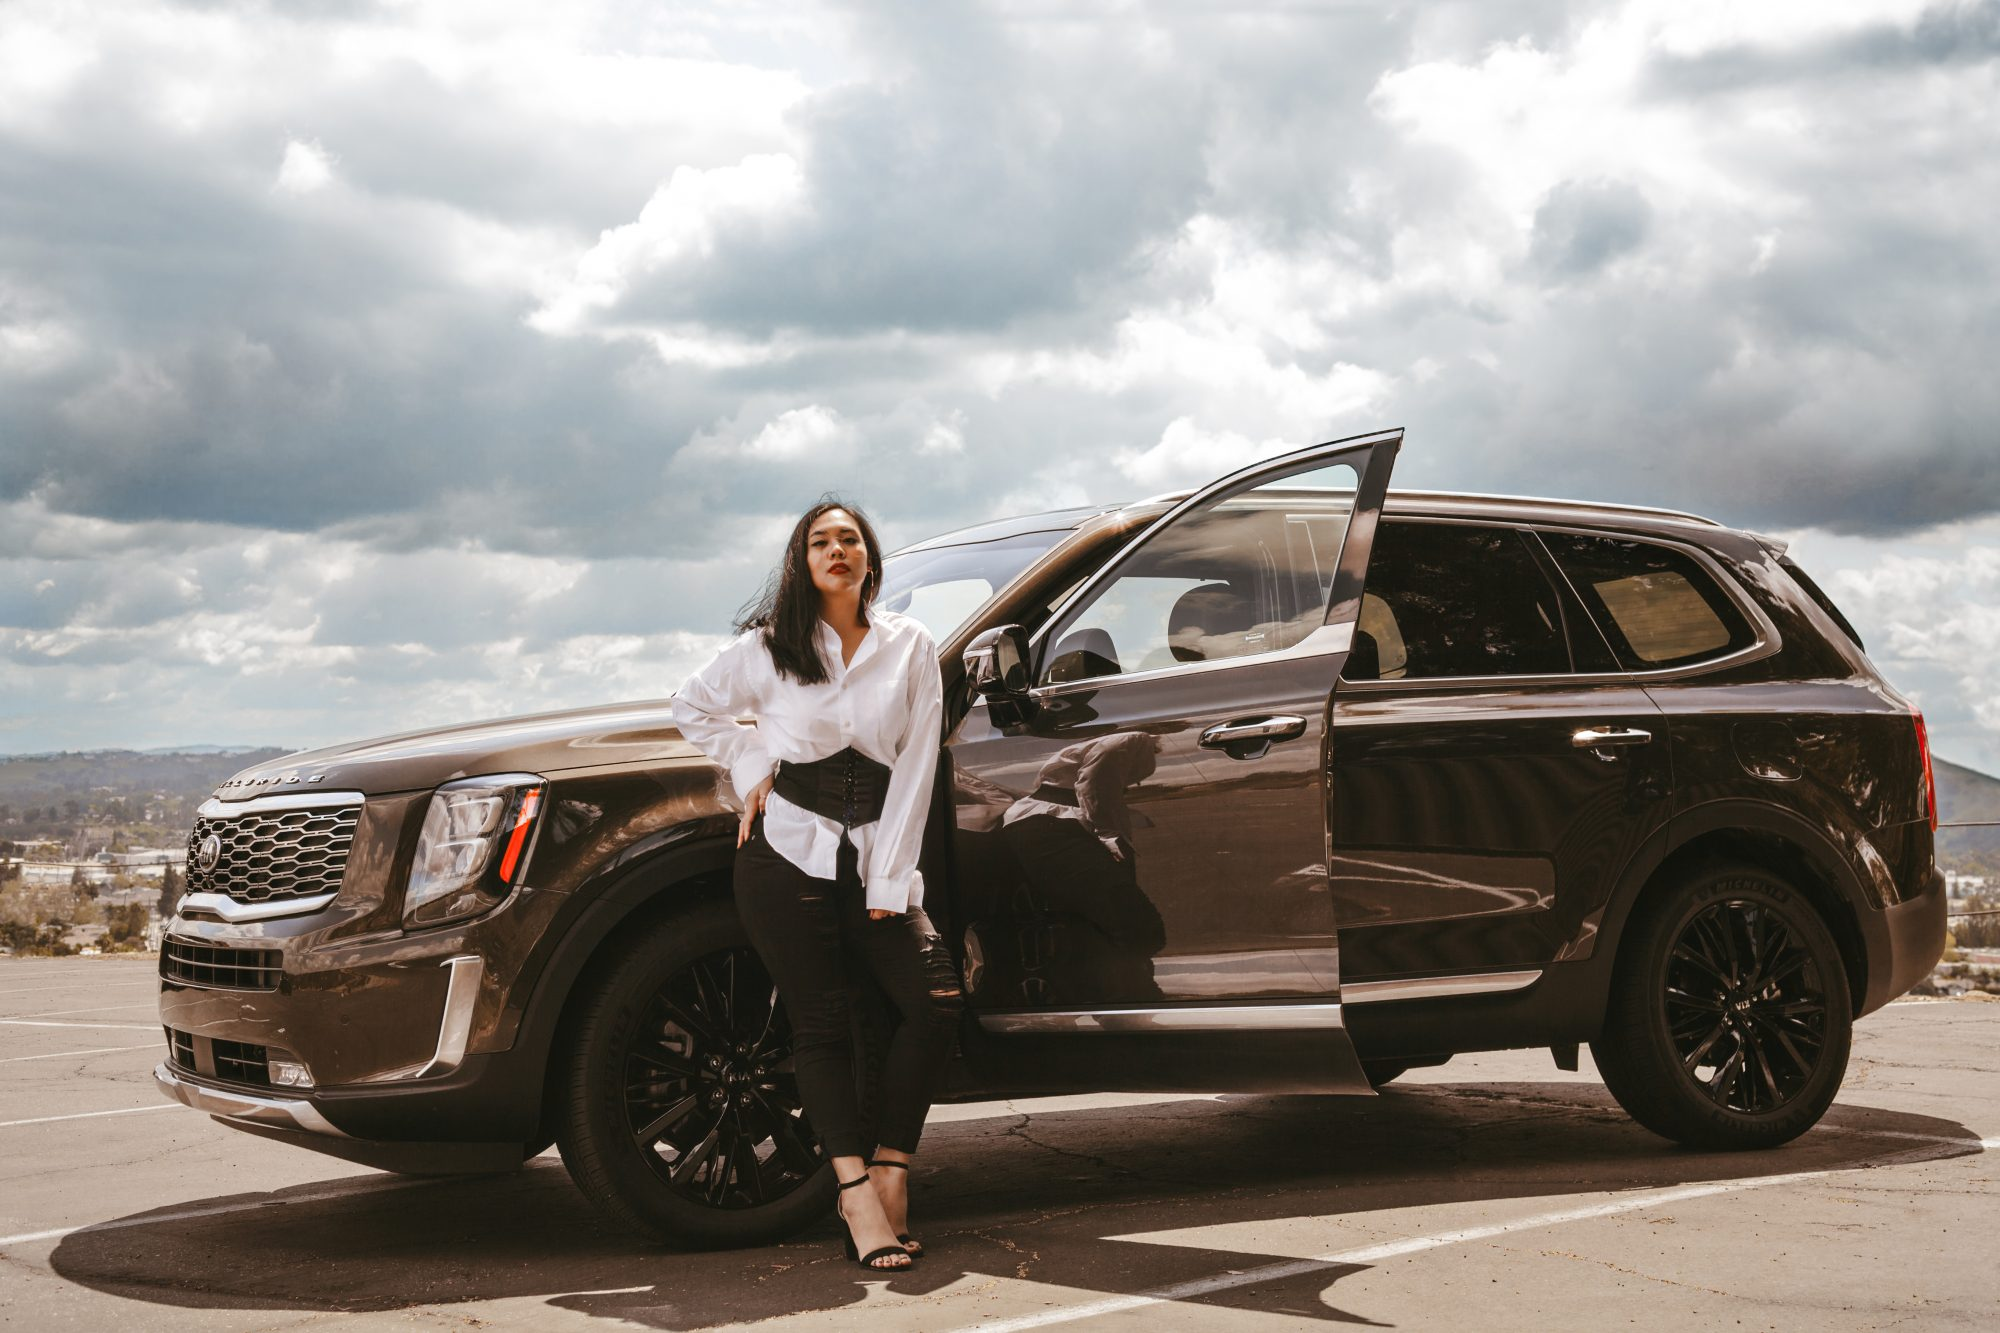 The 2020 Kia Telluride boasts style, subtlety, class, and luxury with an affordable price tag for many, starting at just $31,690. It's advanced, elegant, full of brawn, and offers as much luxury (or possibly even more) than competitors in its class like the Toyota Highlander, Honda Pilot, and even luxury SUVs like the Acura MDX and the Infinity QX60. - www.theballeronabudget.com